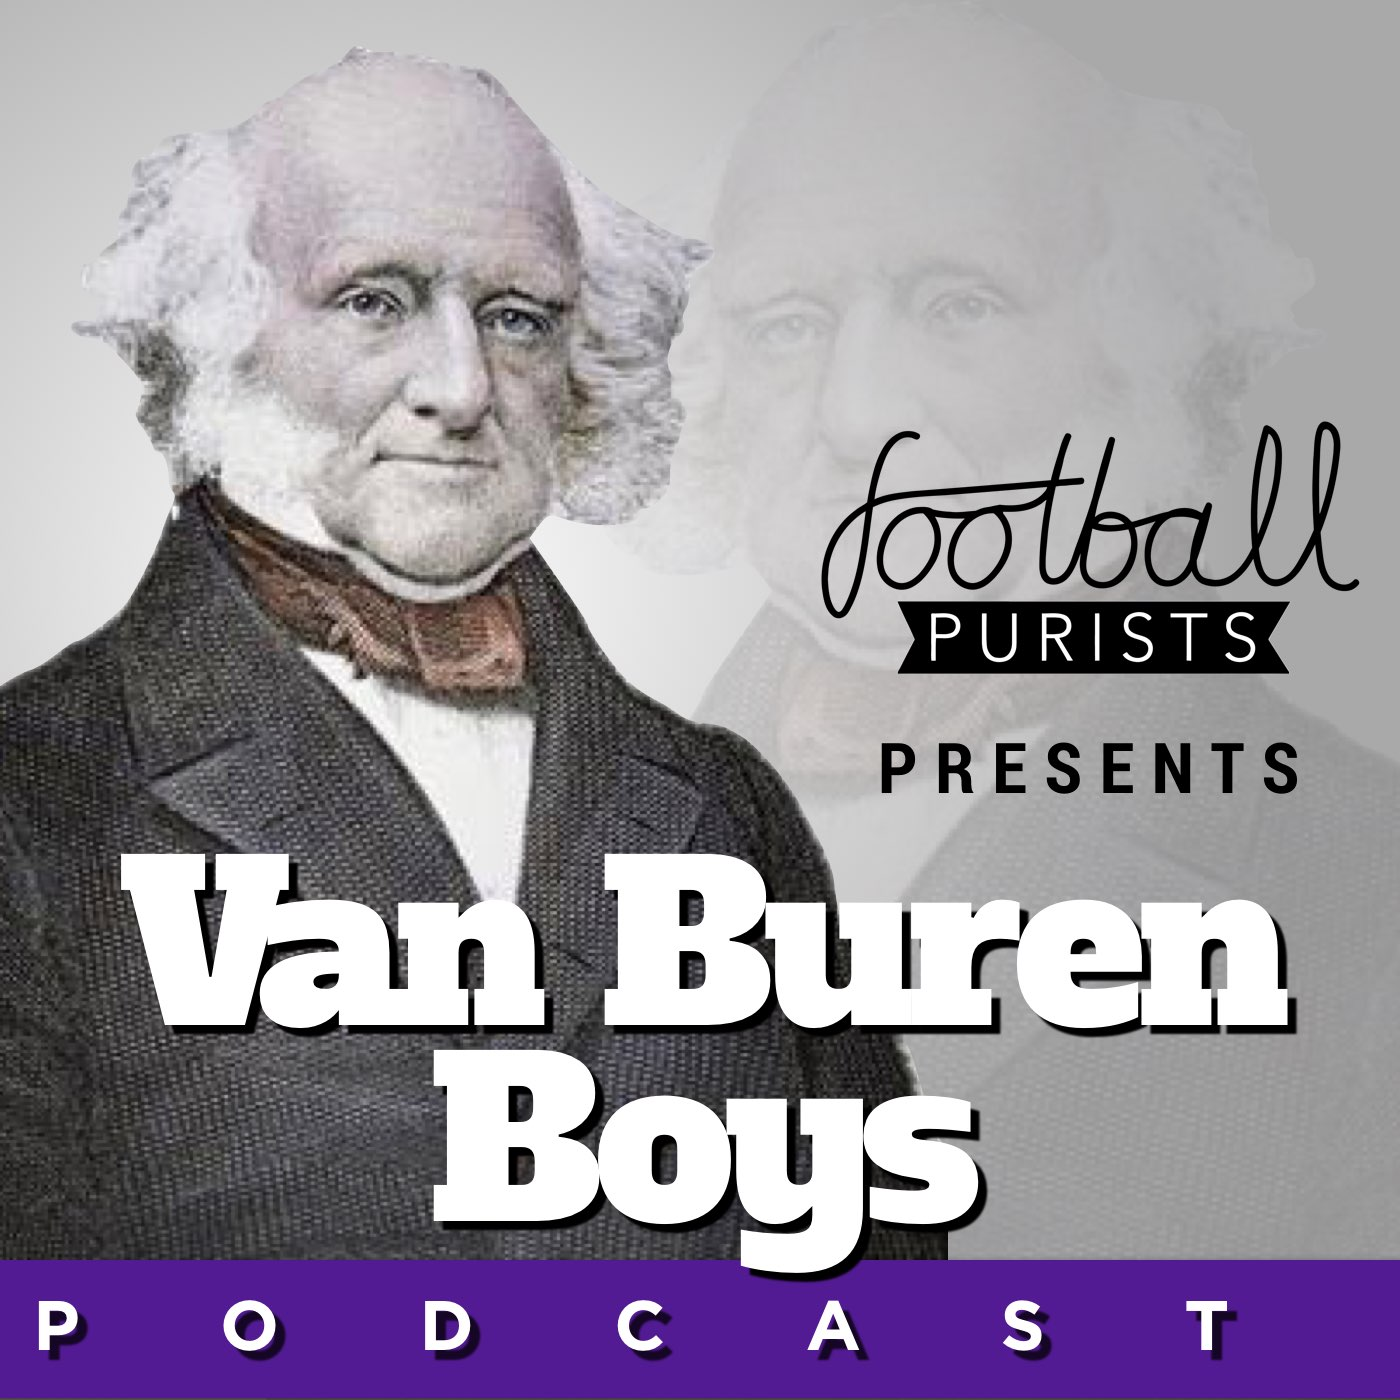 Van Buren Boys : Danish Accents and British Alternative